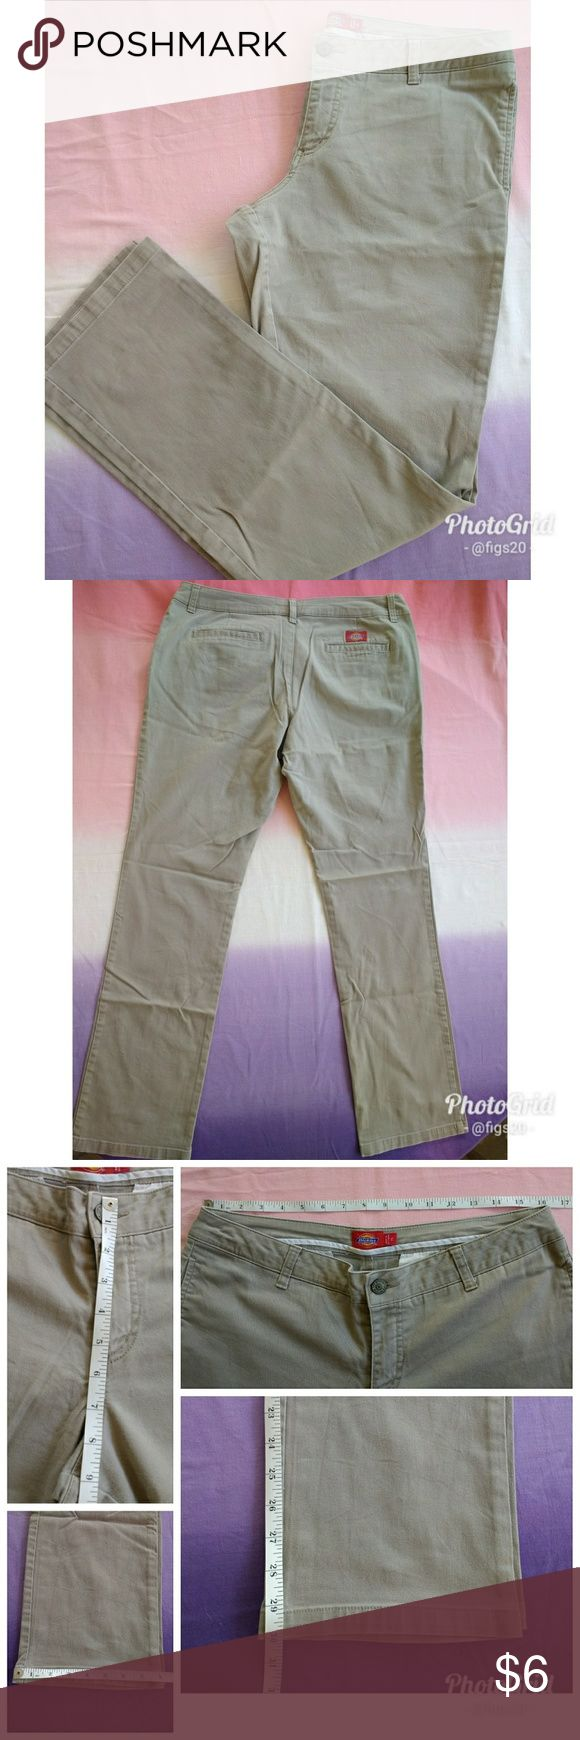 Dickies Uniform Pants These are a pair of Dickies khaki pants in juniors size 15. They are in good condition with no rips or tears but have some signs of wear. They will do the job for a good pair of work or other uniform pants. Keep in mind these are regular khakis, not the work wear version of Dickies. See measurements, and let me know if you have any questions! Dickies Pants Straight Leg